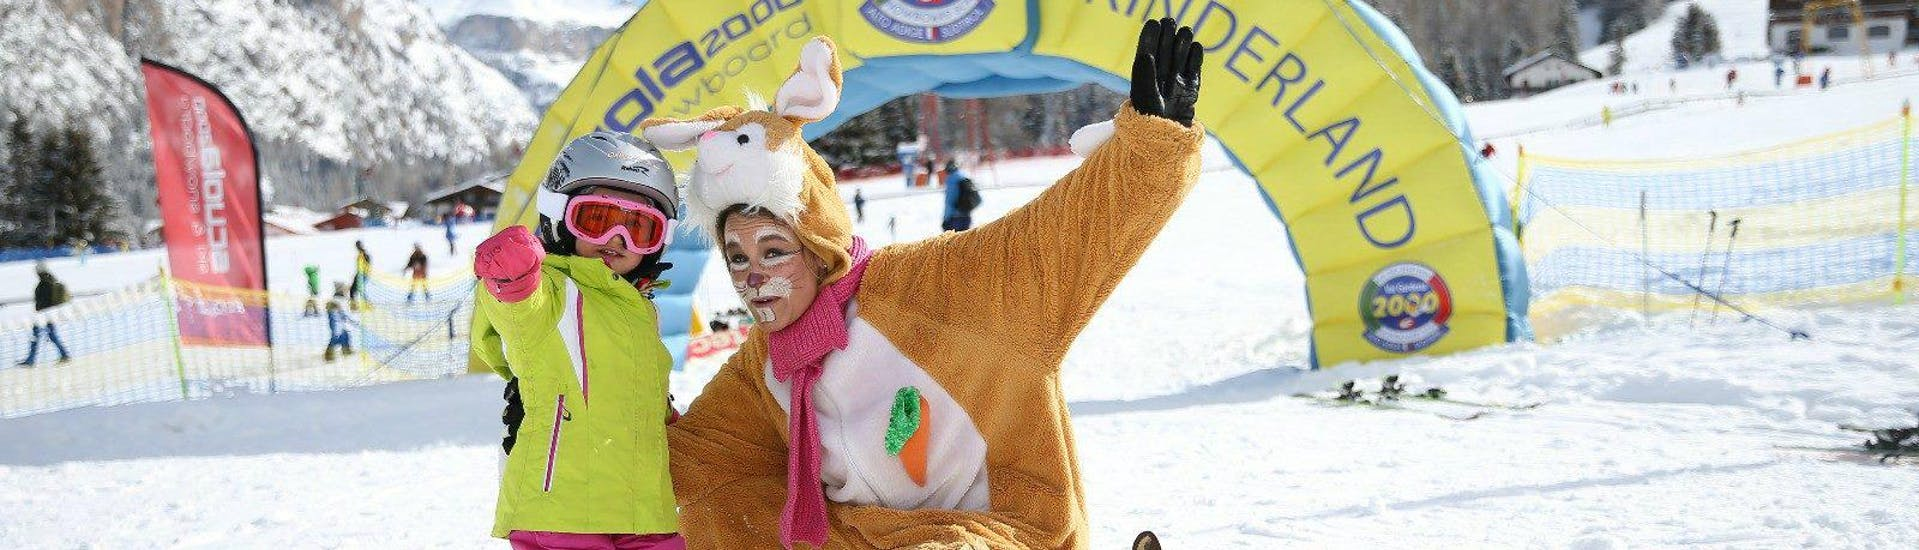 """Kids Ski Lessons """"Full day"""" (4-12 y.) for All Levels with Scuola Sci 2000 Selva - Hero image"""